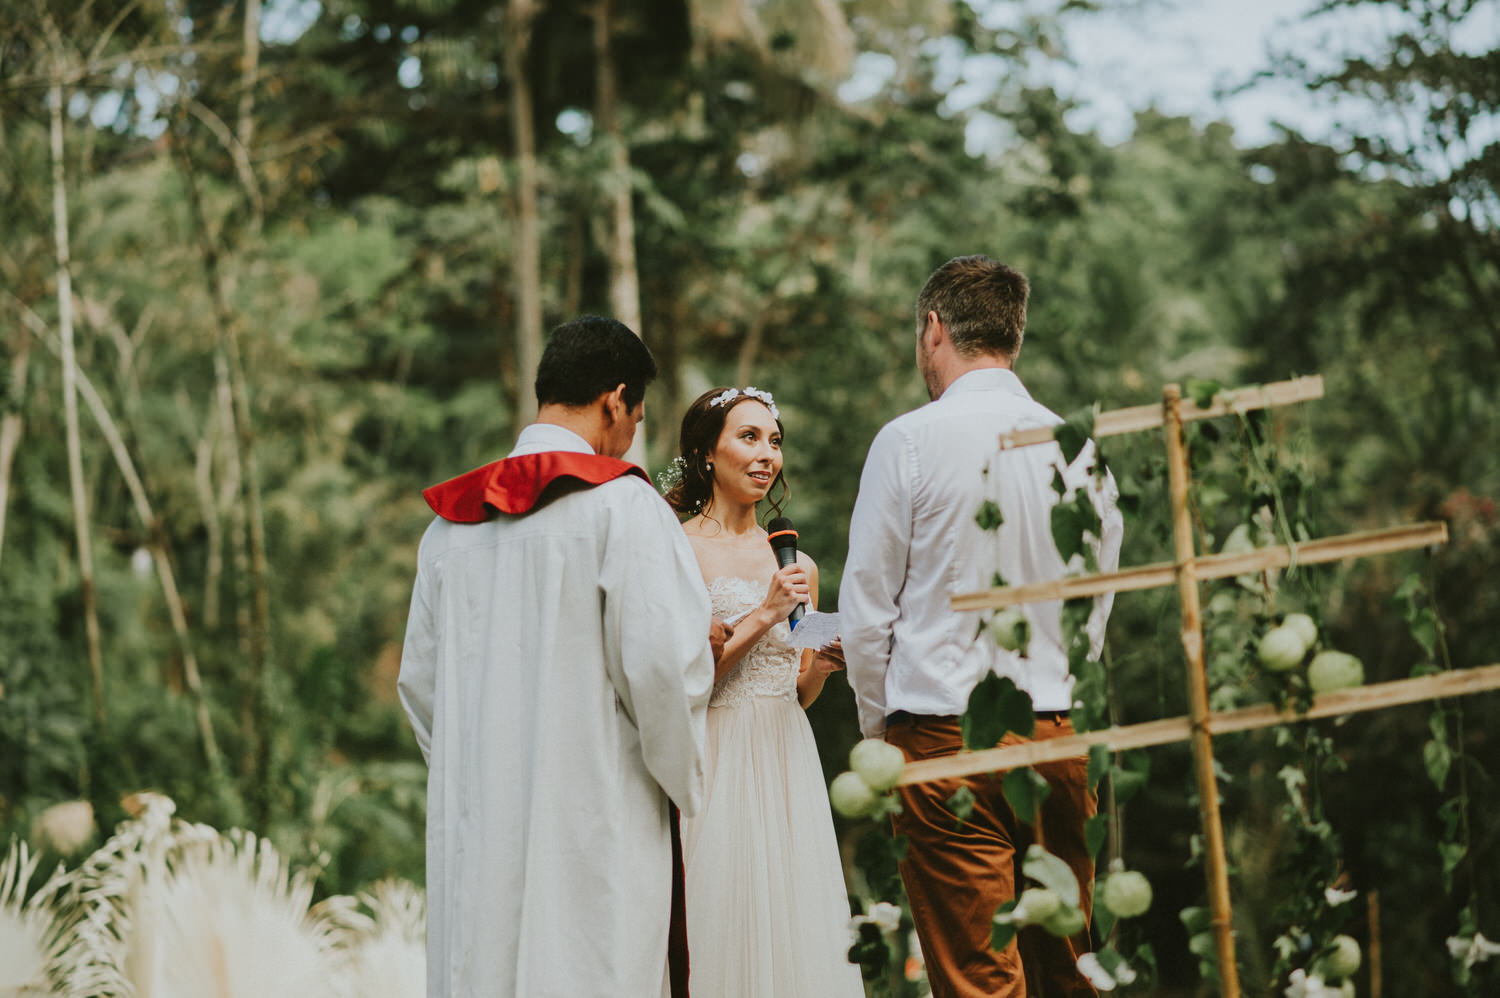 bali-wedding-ubud-wedding-wedding-destination-diktatphotography-kadek-artayasa-elaine-and-glenn-077